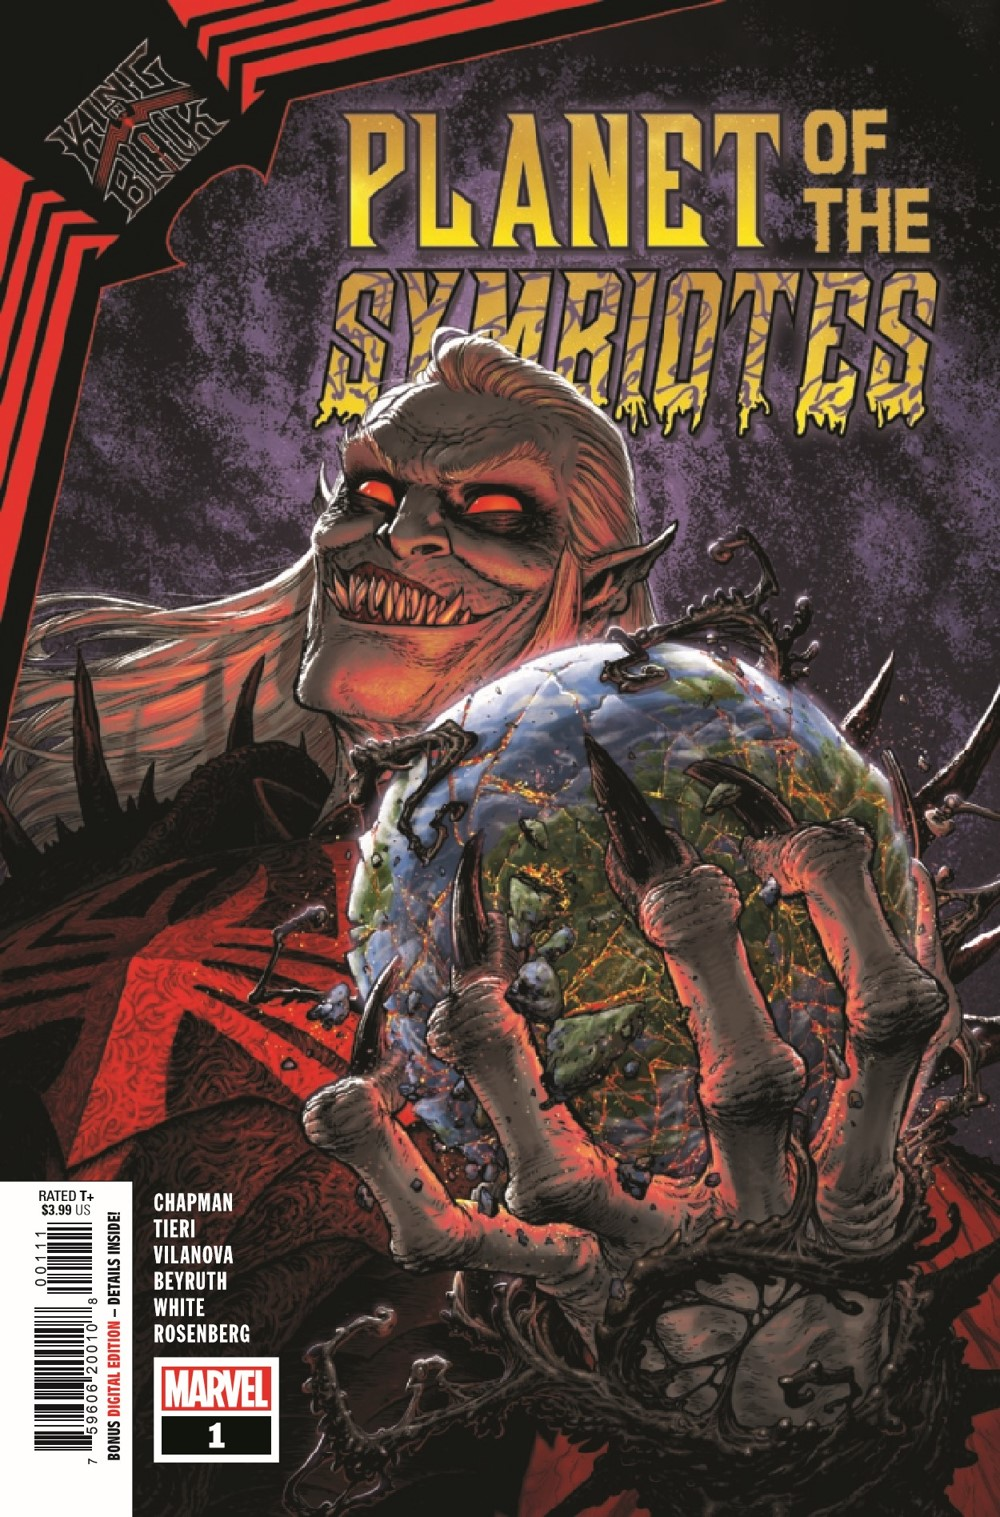 SYMBIOTESKIB2021001_Preview-1 ComicList Previews: KING IN BLACK PLANET OF THE SYMBIOTES #1 (OF 3)